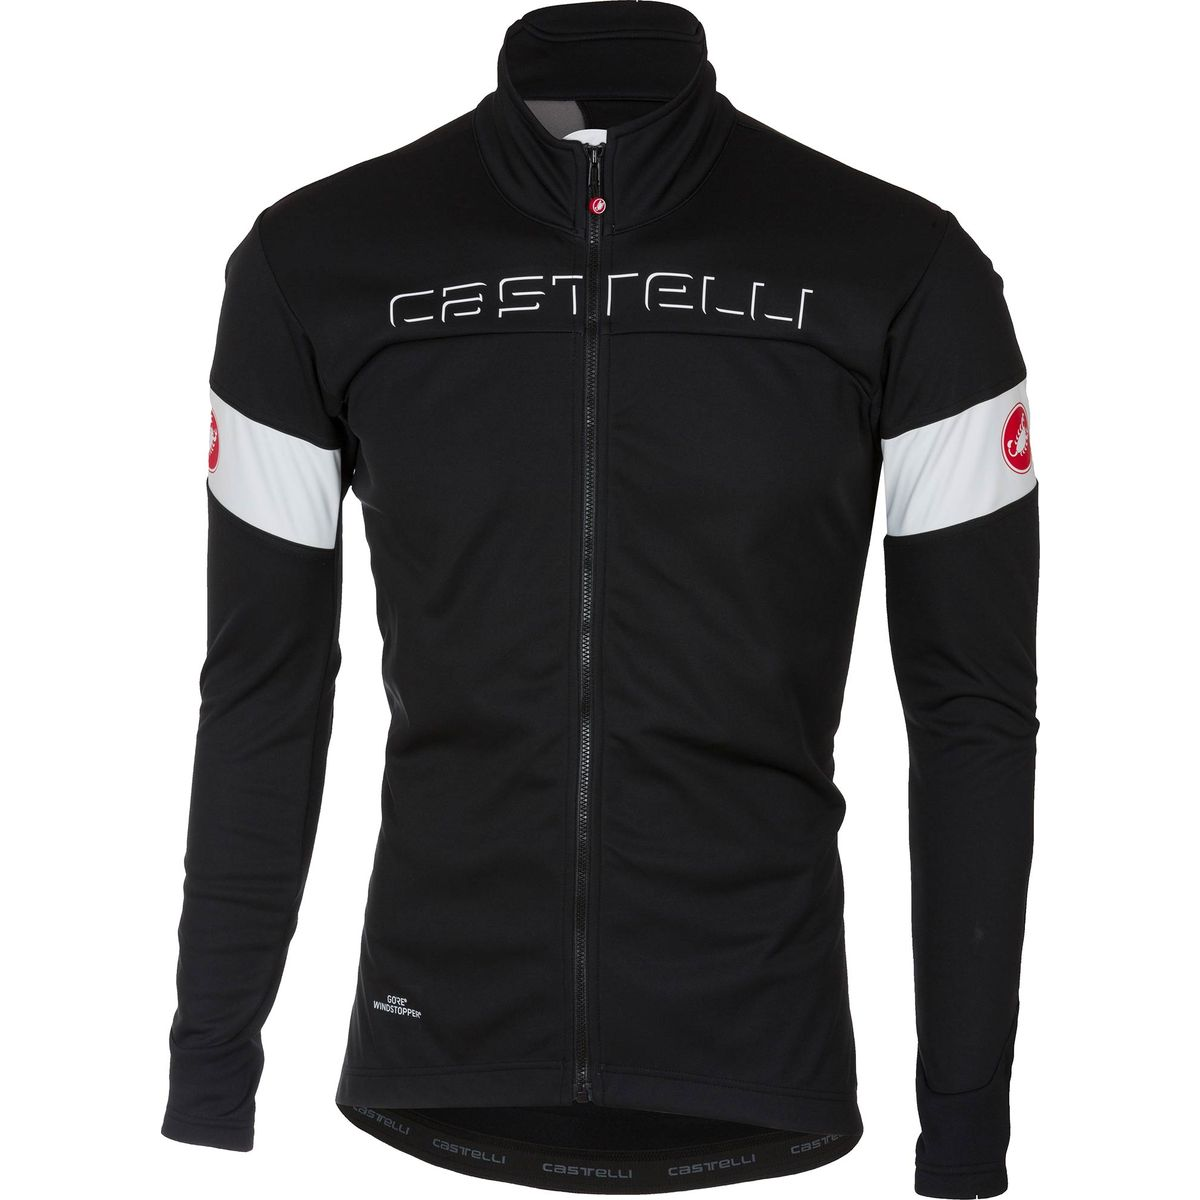 TRANSITION JACKET softshell jacket